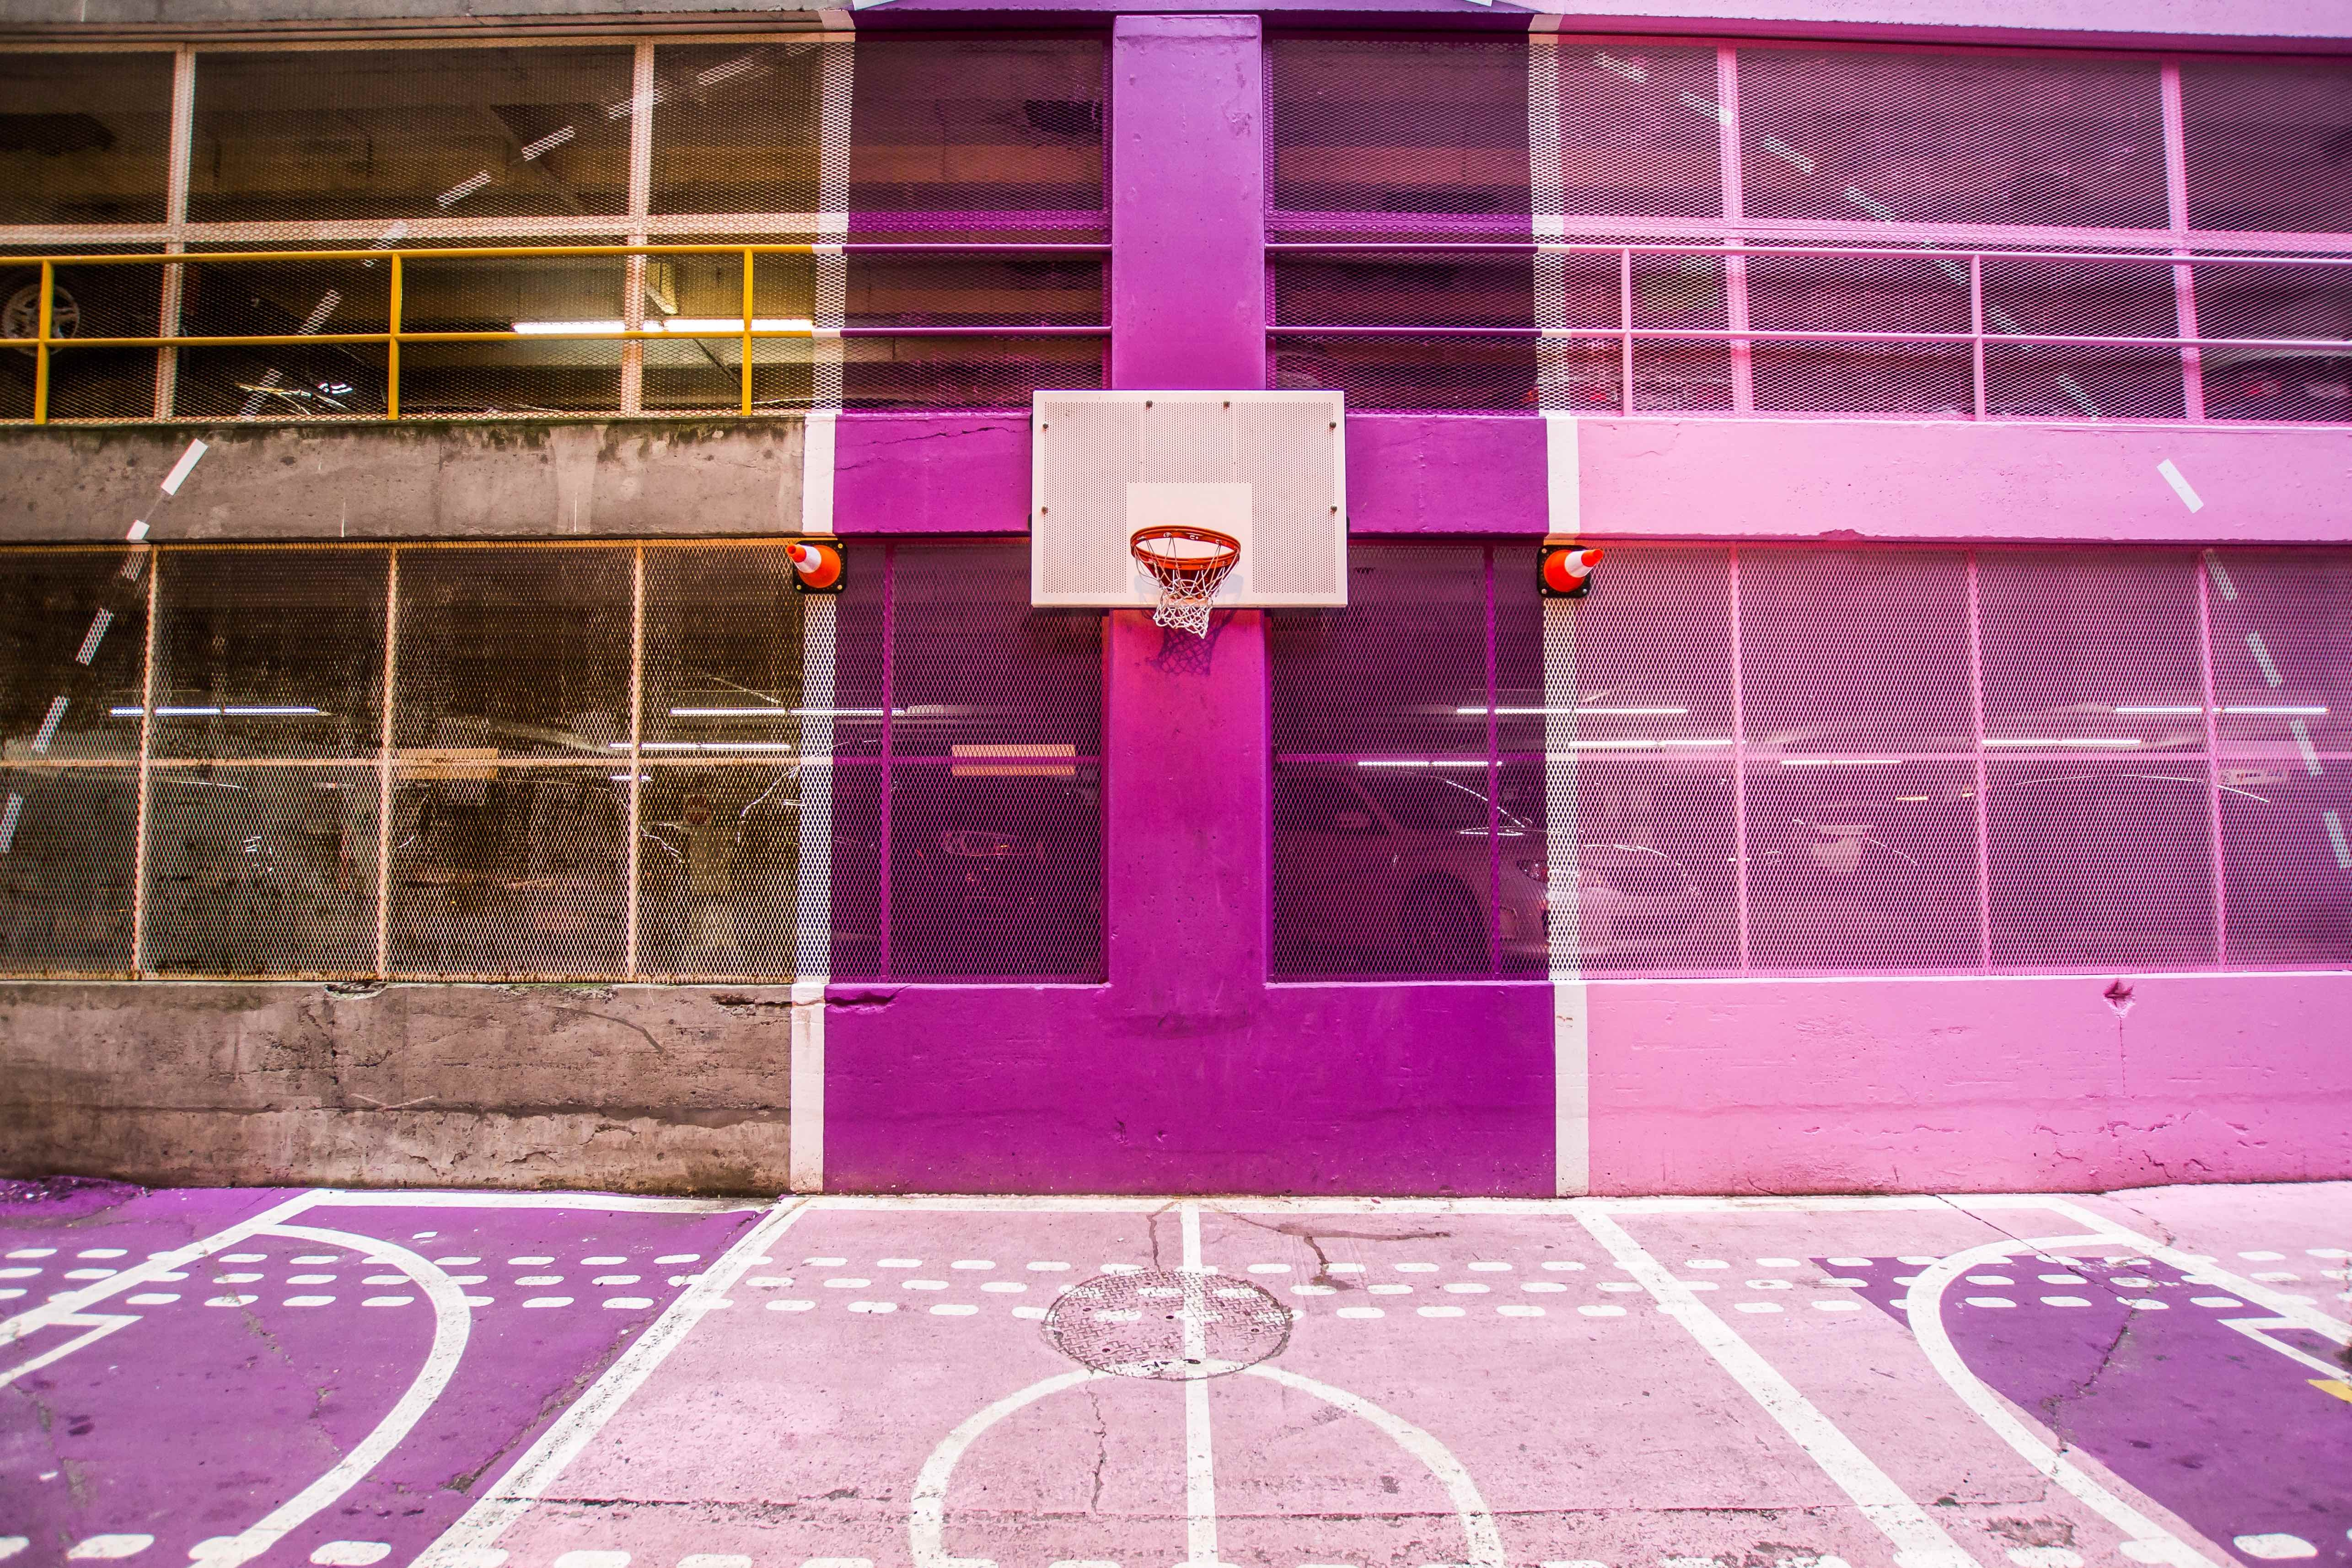 A colorful pink and purple outdoor basketball court